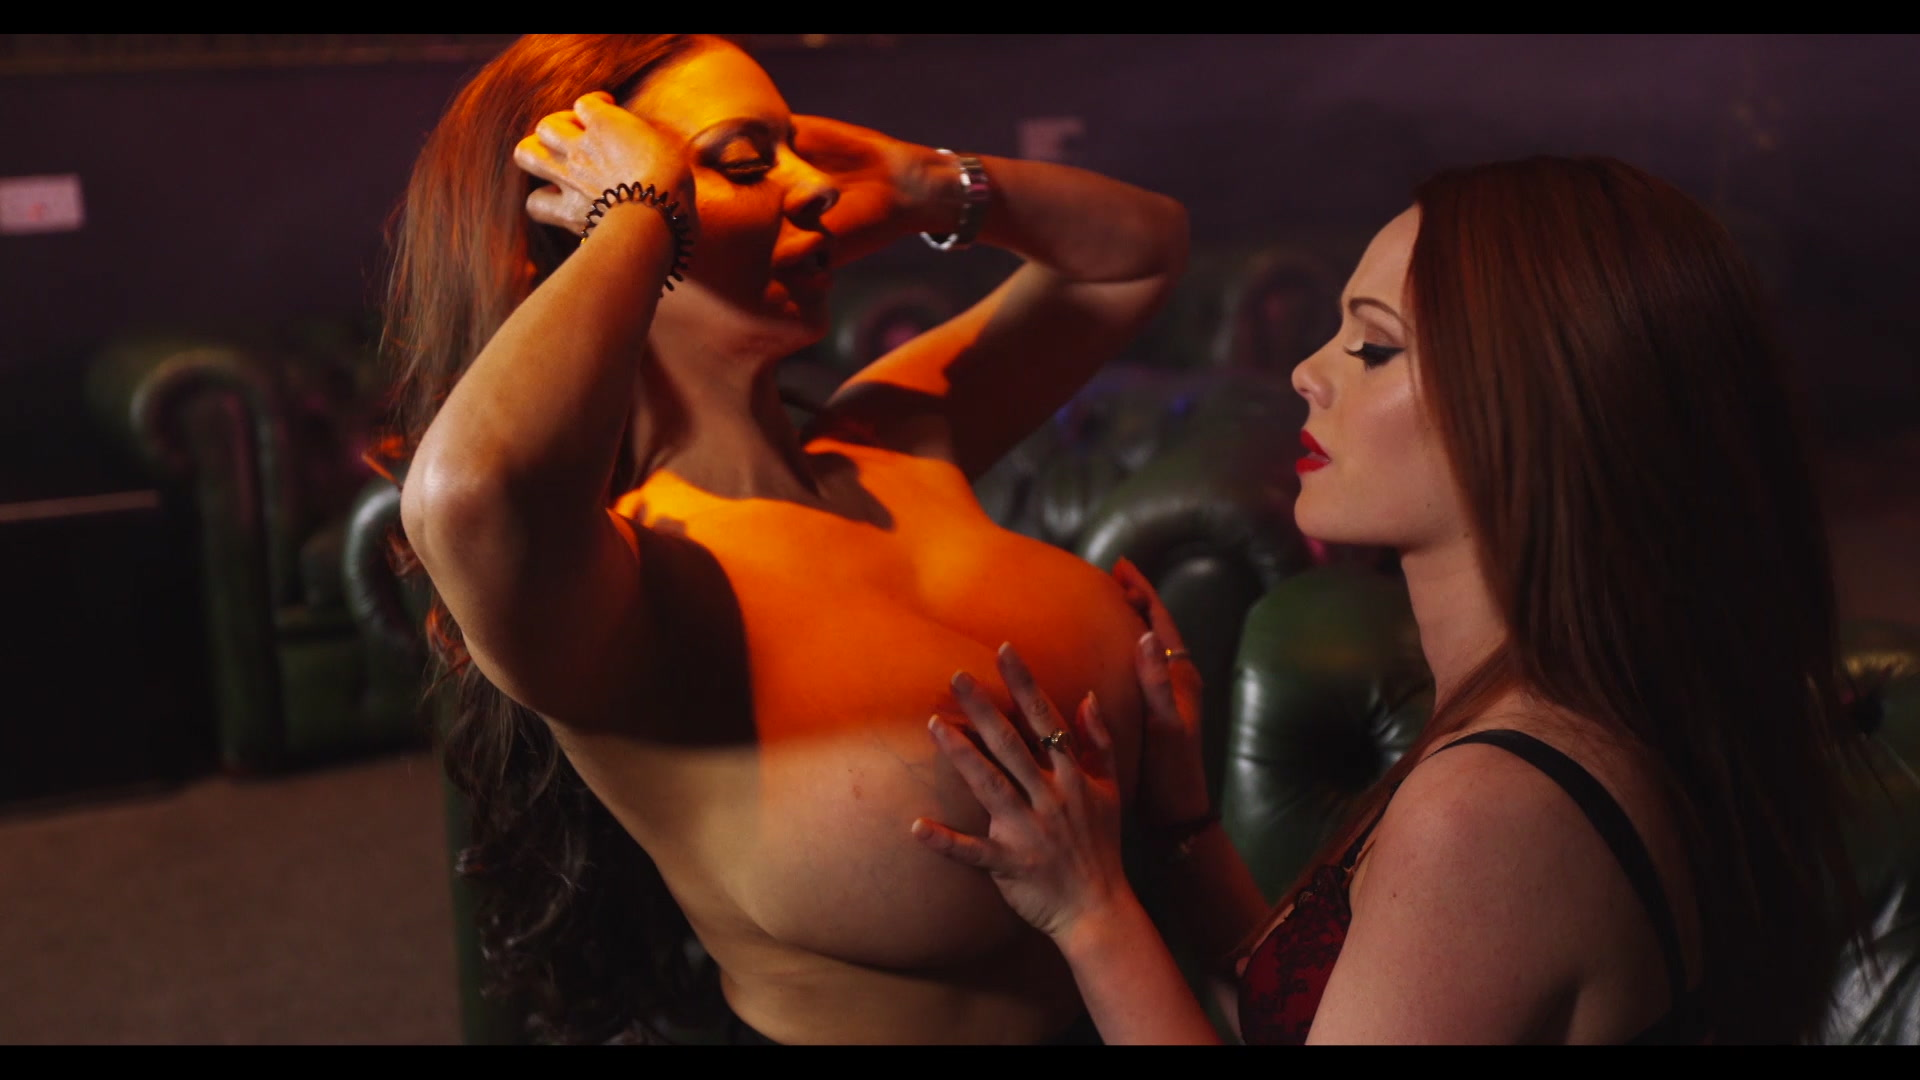 Scene with Linsey Dawn McKenzie and Ella Hughes - image 6 out of 20